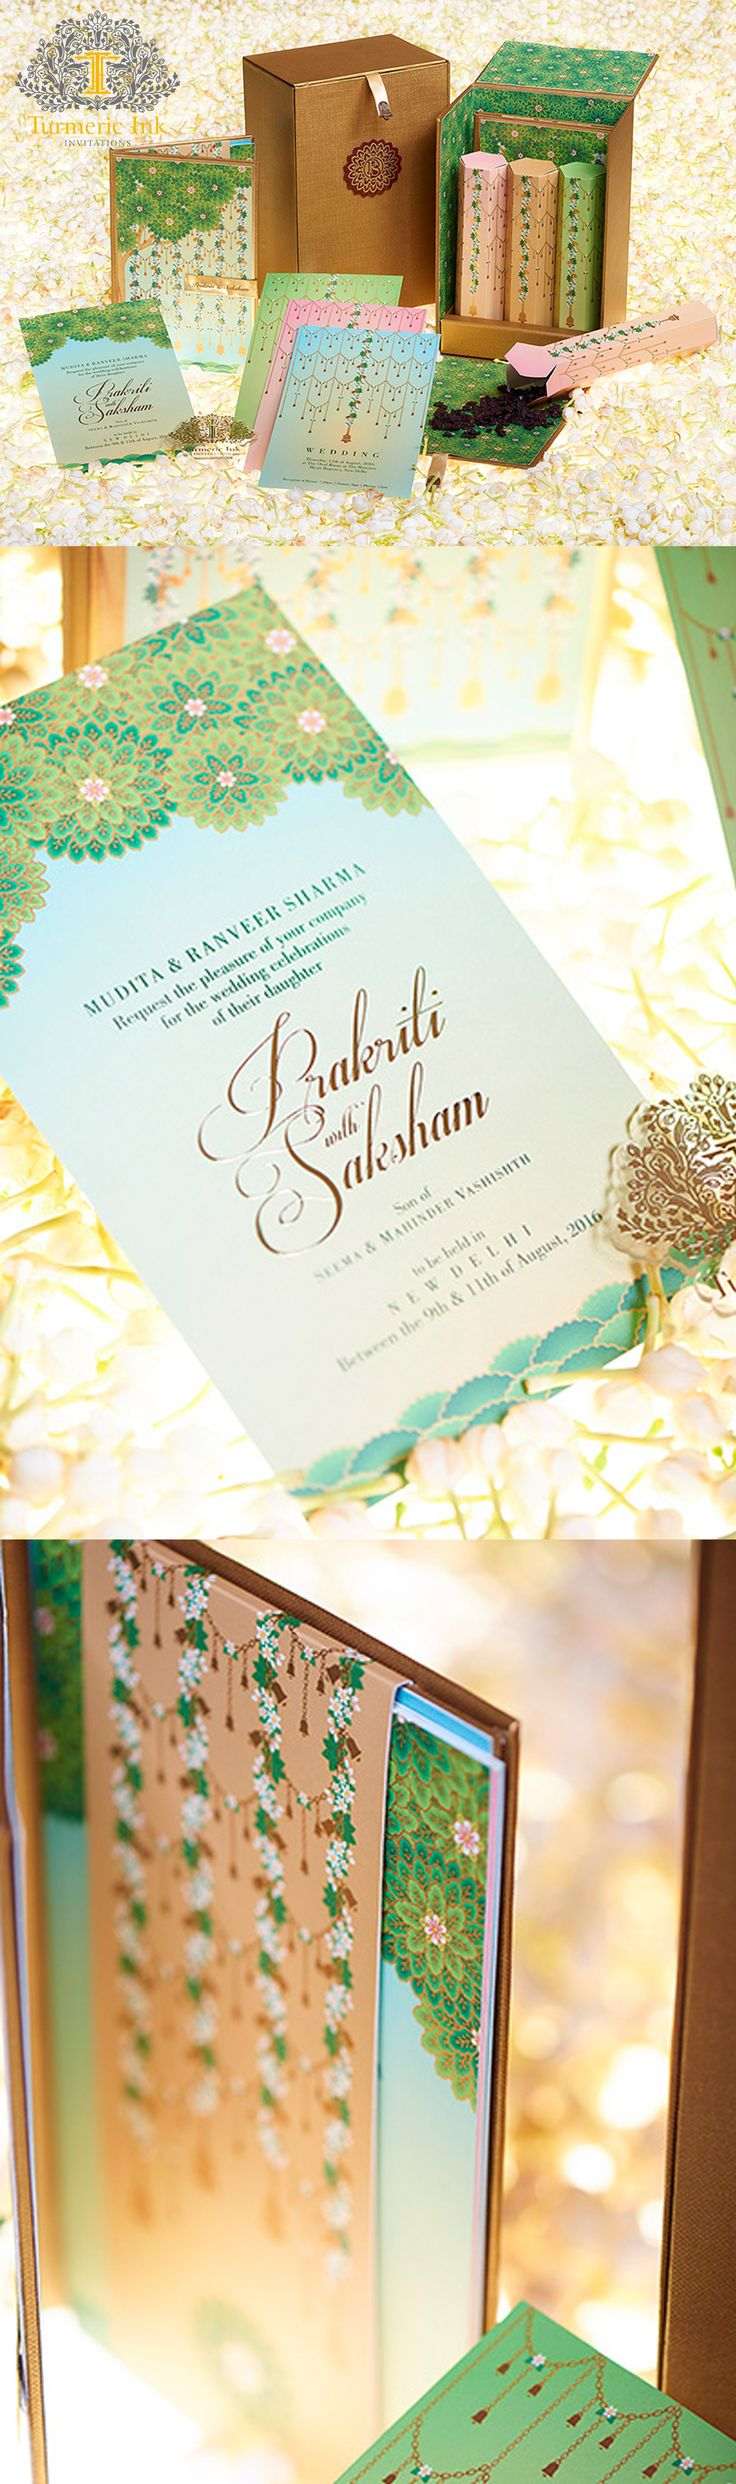 indian wedding invitation card template%0A invite  invitations  Indian wedding invite  wedding card  bride  indian  bride  bride to be  groom  indian groom  groom to be  stationery  couture  invites